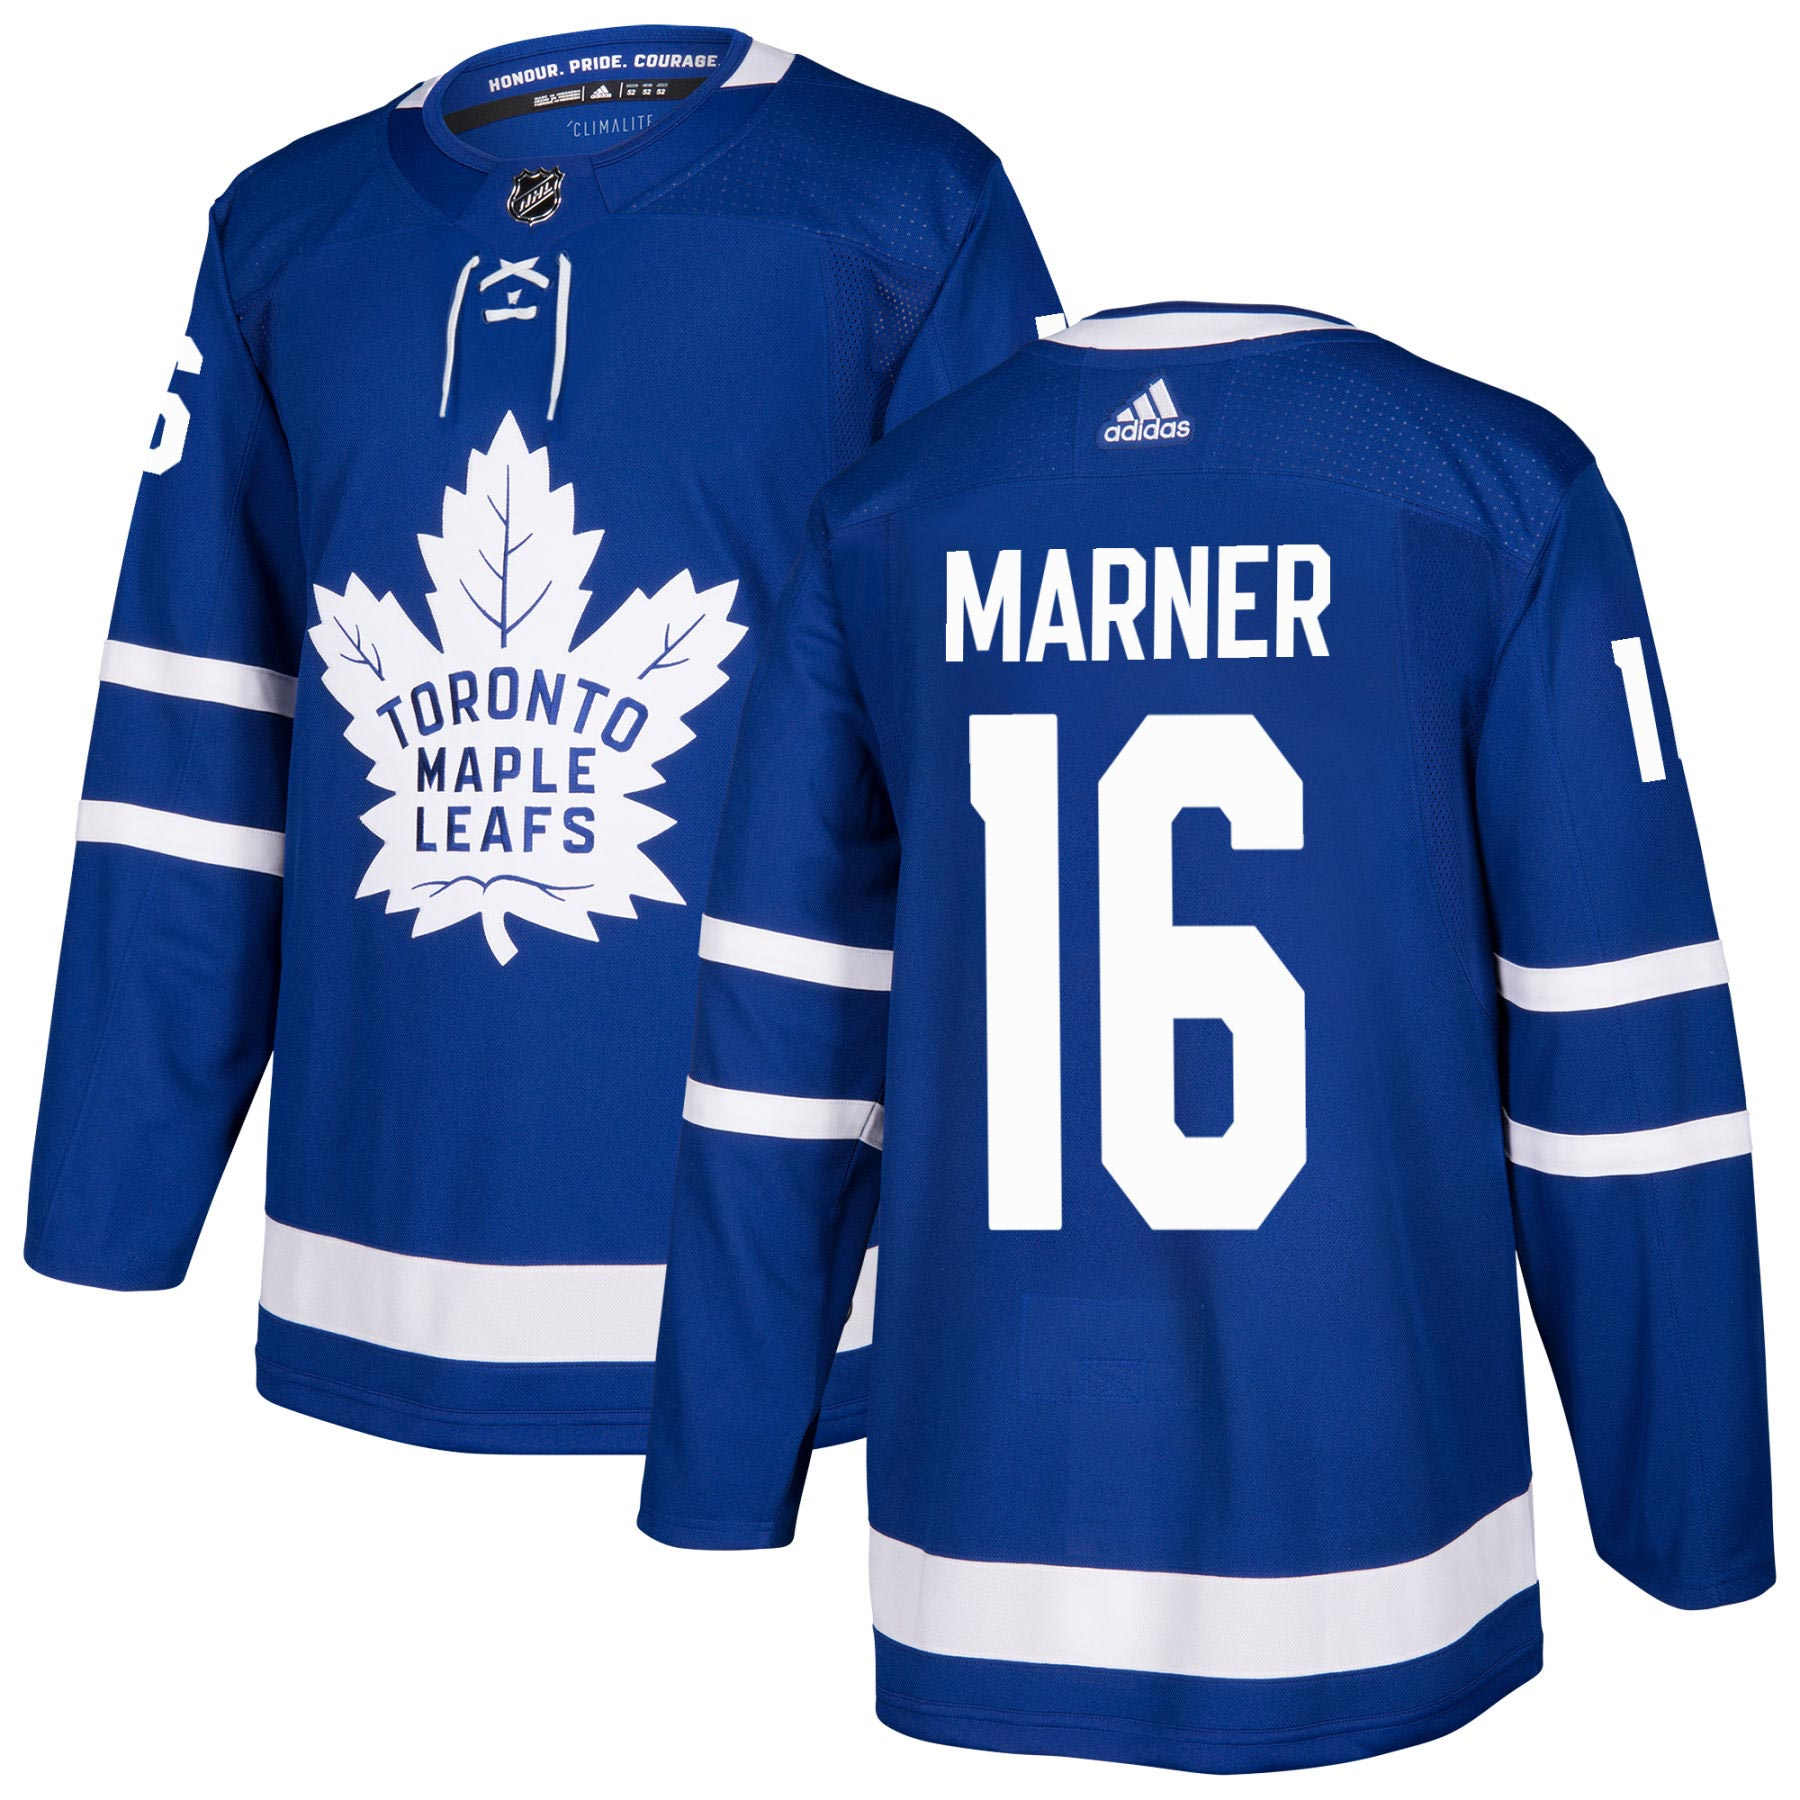 Toronto Maple Leafs Mitch Marner NHL Authentic Pro Home Jersey – Sport Army 5ceeafe6b